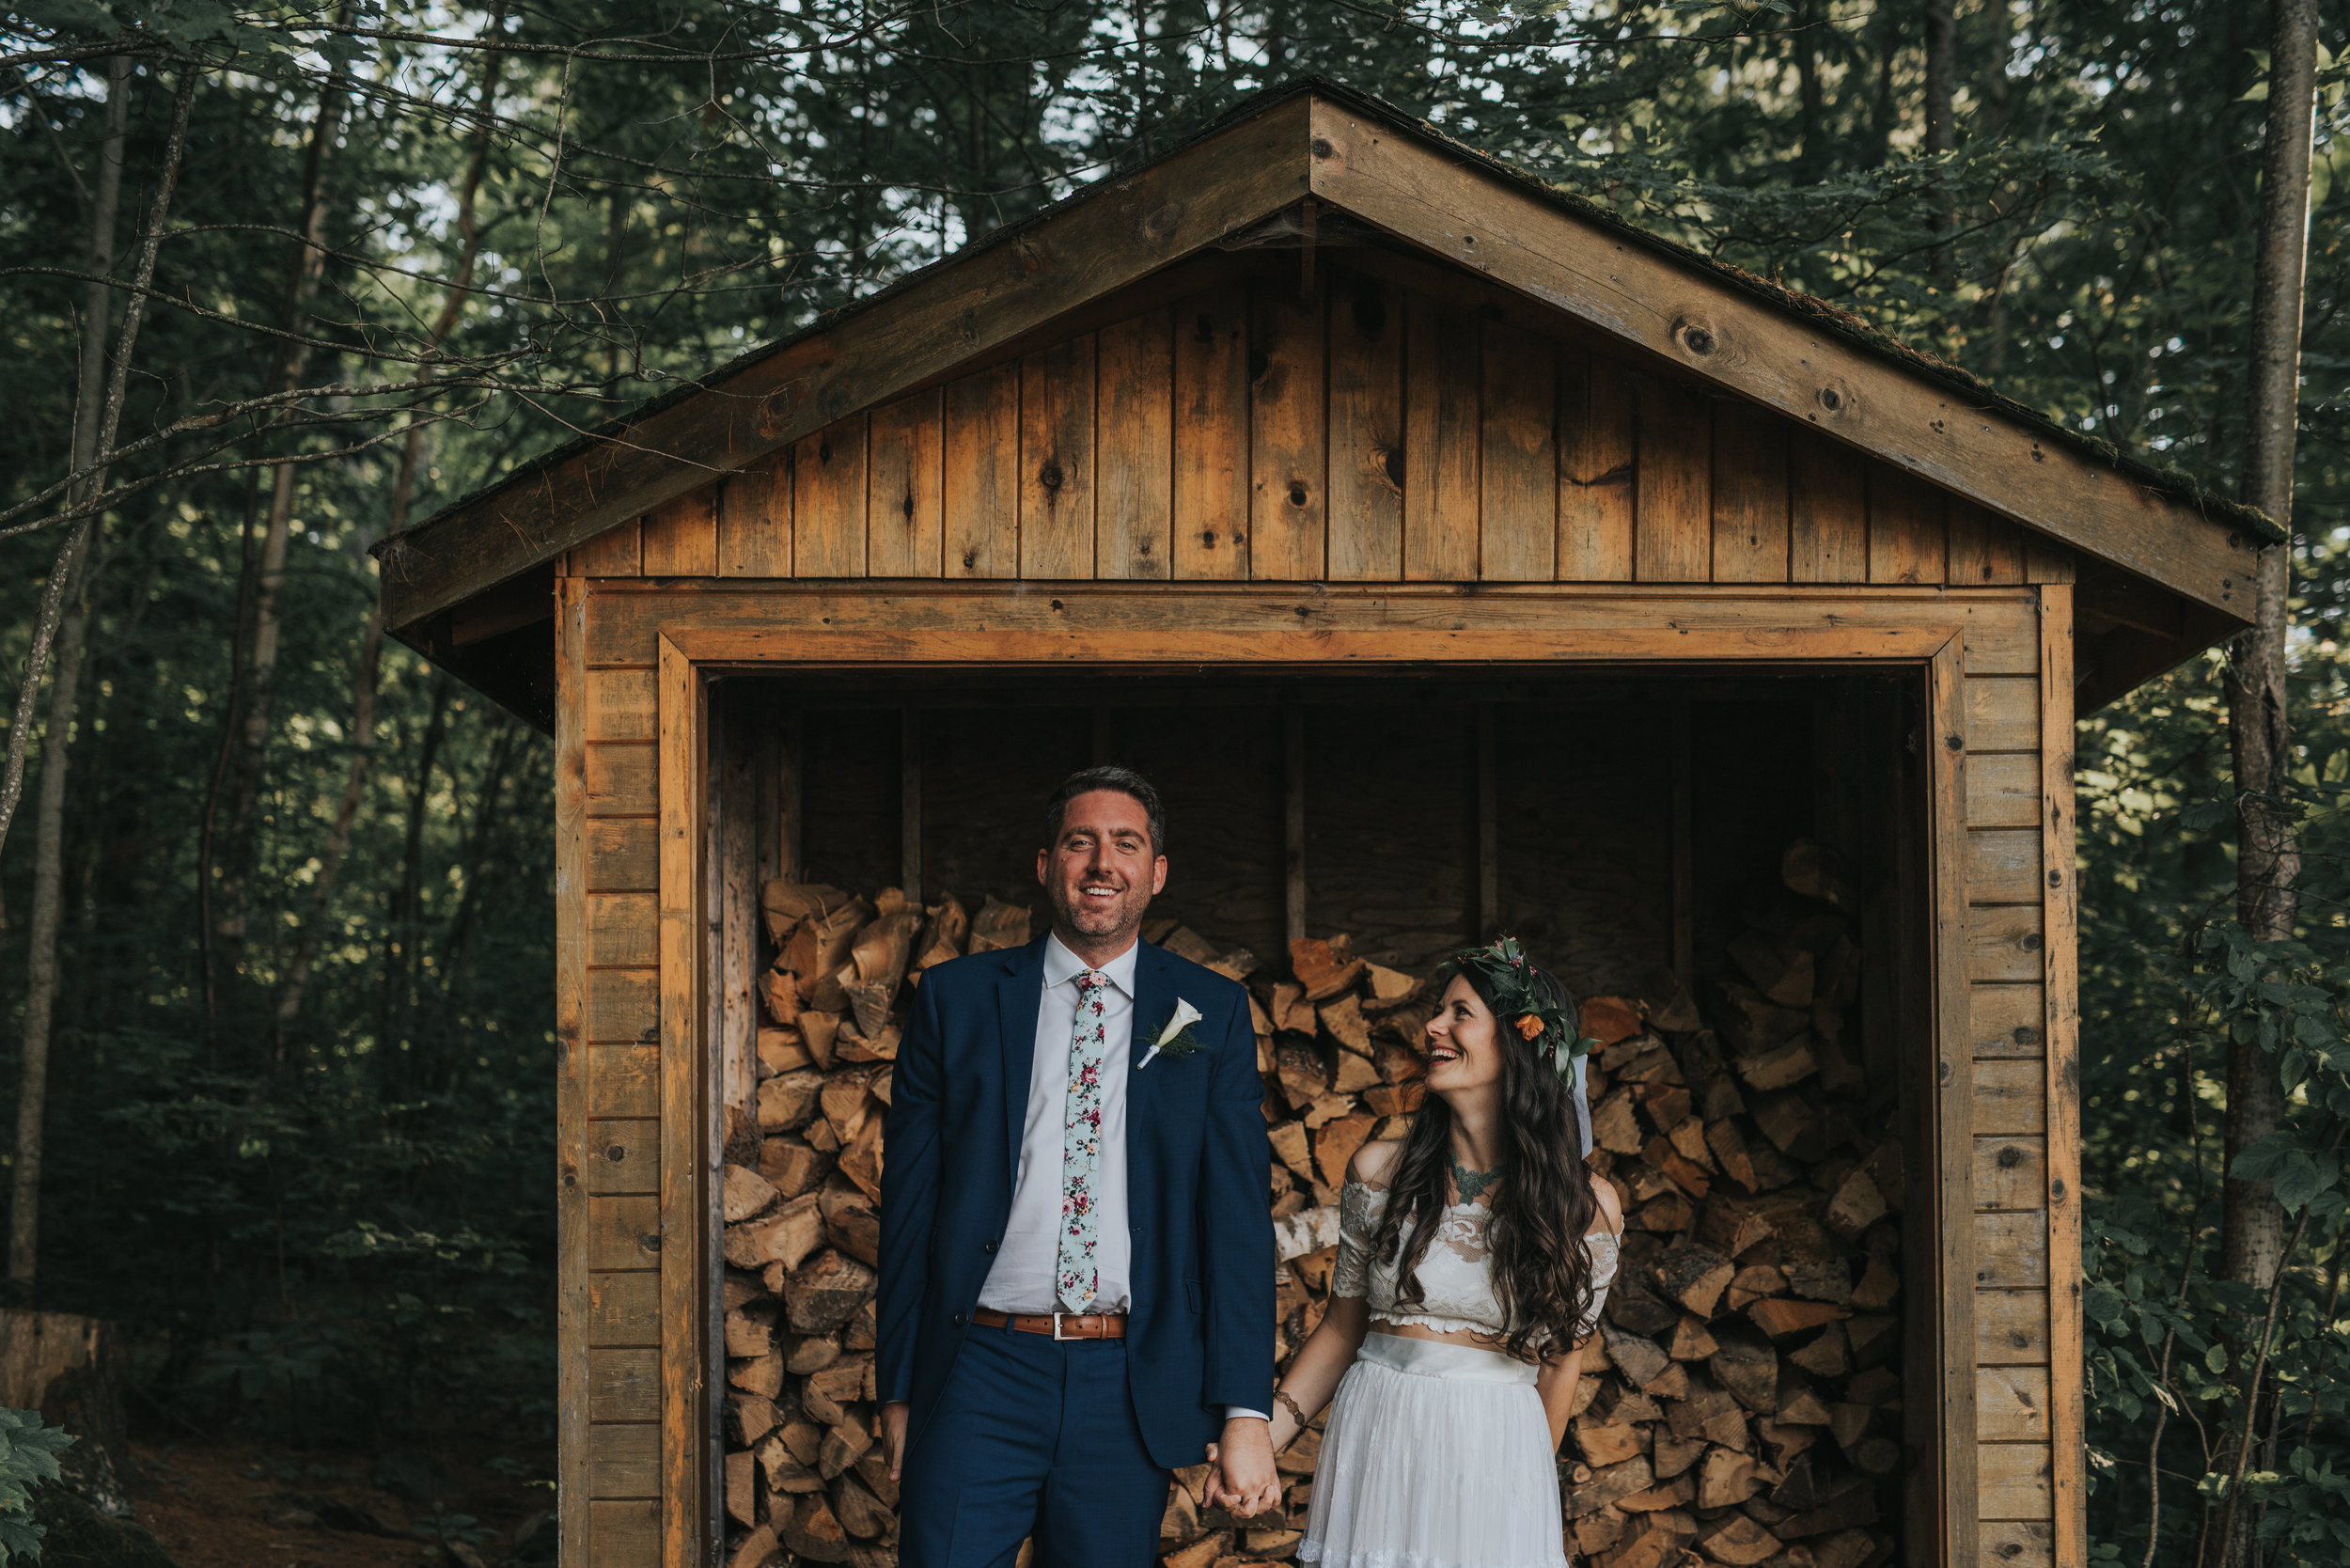 bride-groom-rustic-cabin-wedding-toronto-bohemian-boho-outdoor-summer-wedding-documentary-wedding-photography-by-willow-birch-photo.jpg